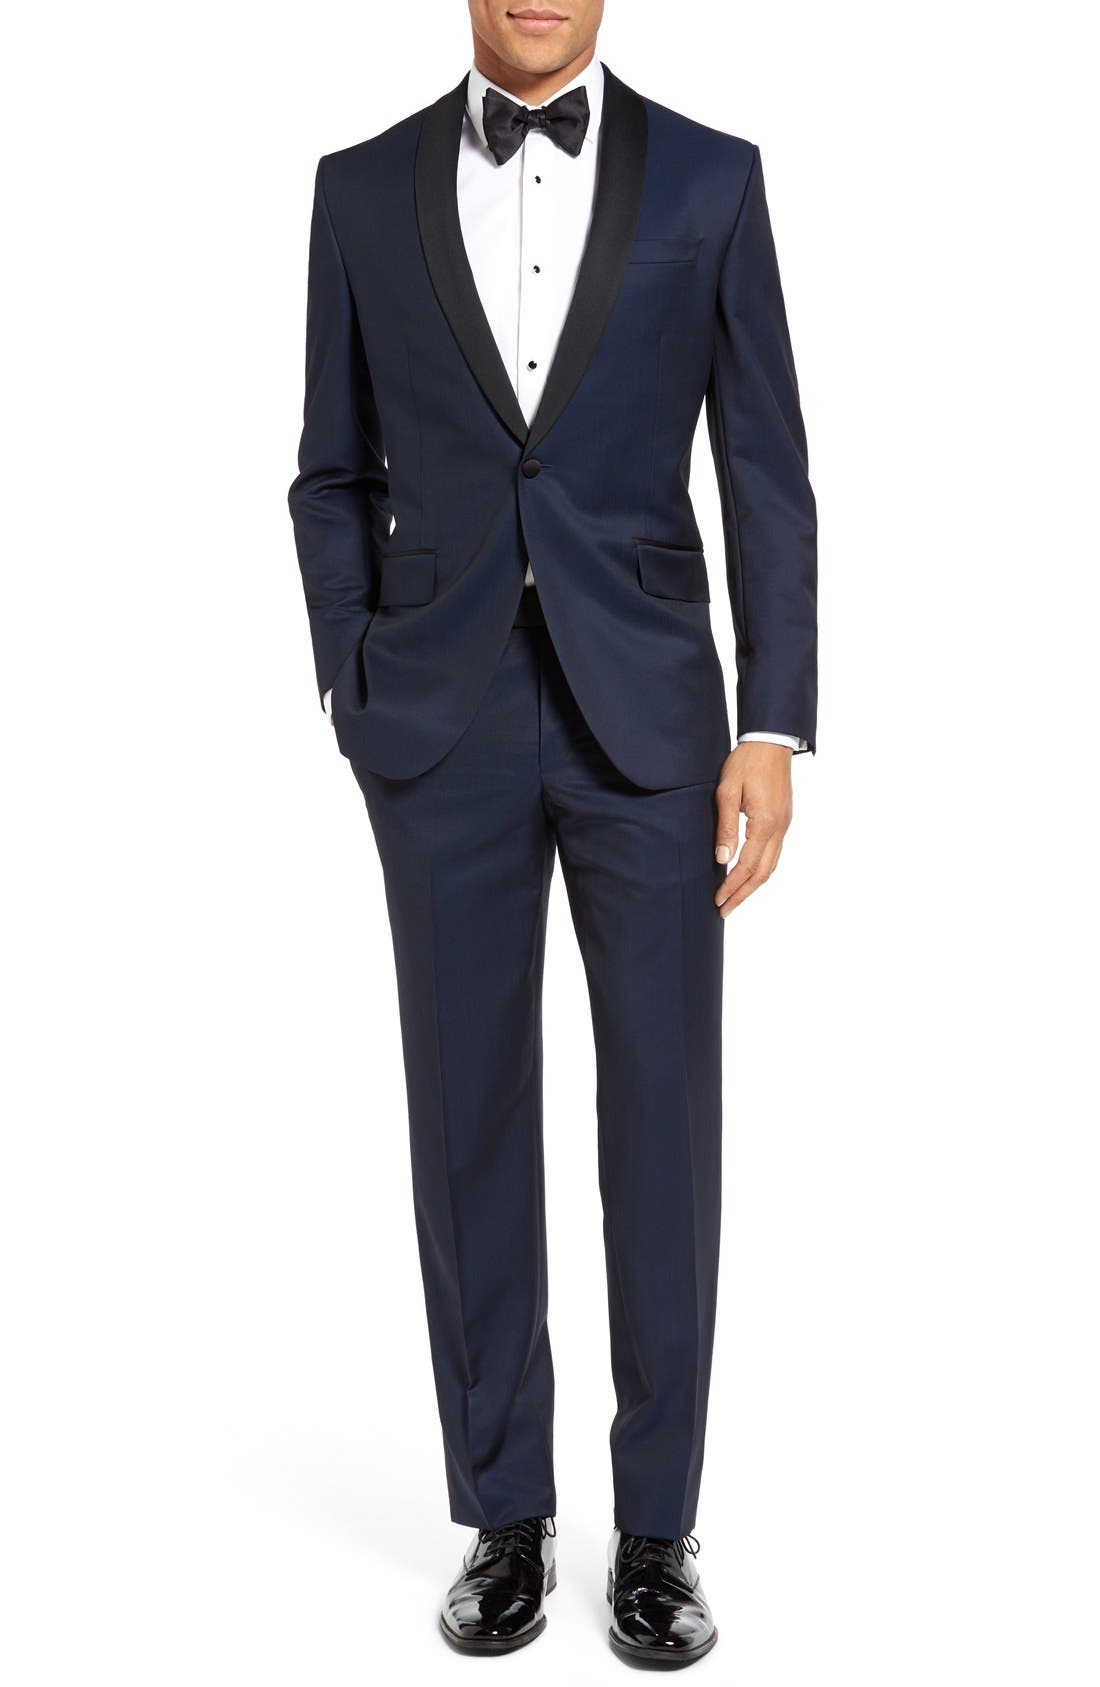 Josh Trim Fit Navy Shawl Lapel Tuxedo, Main, color, NAVY BLUE